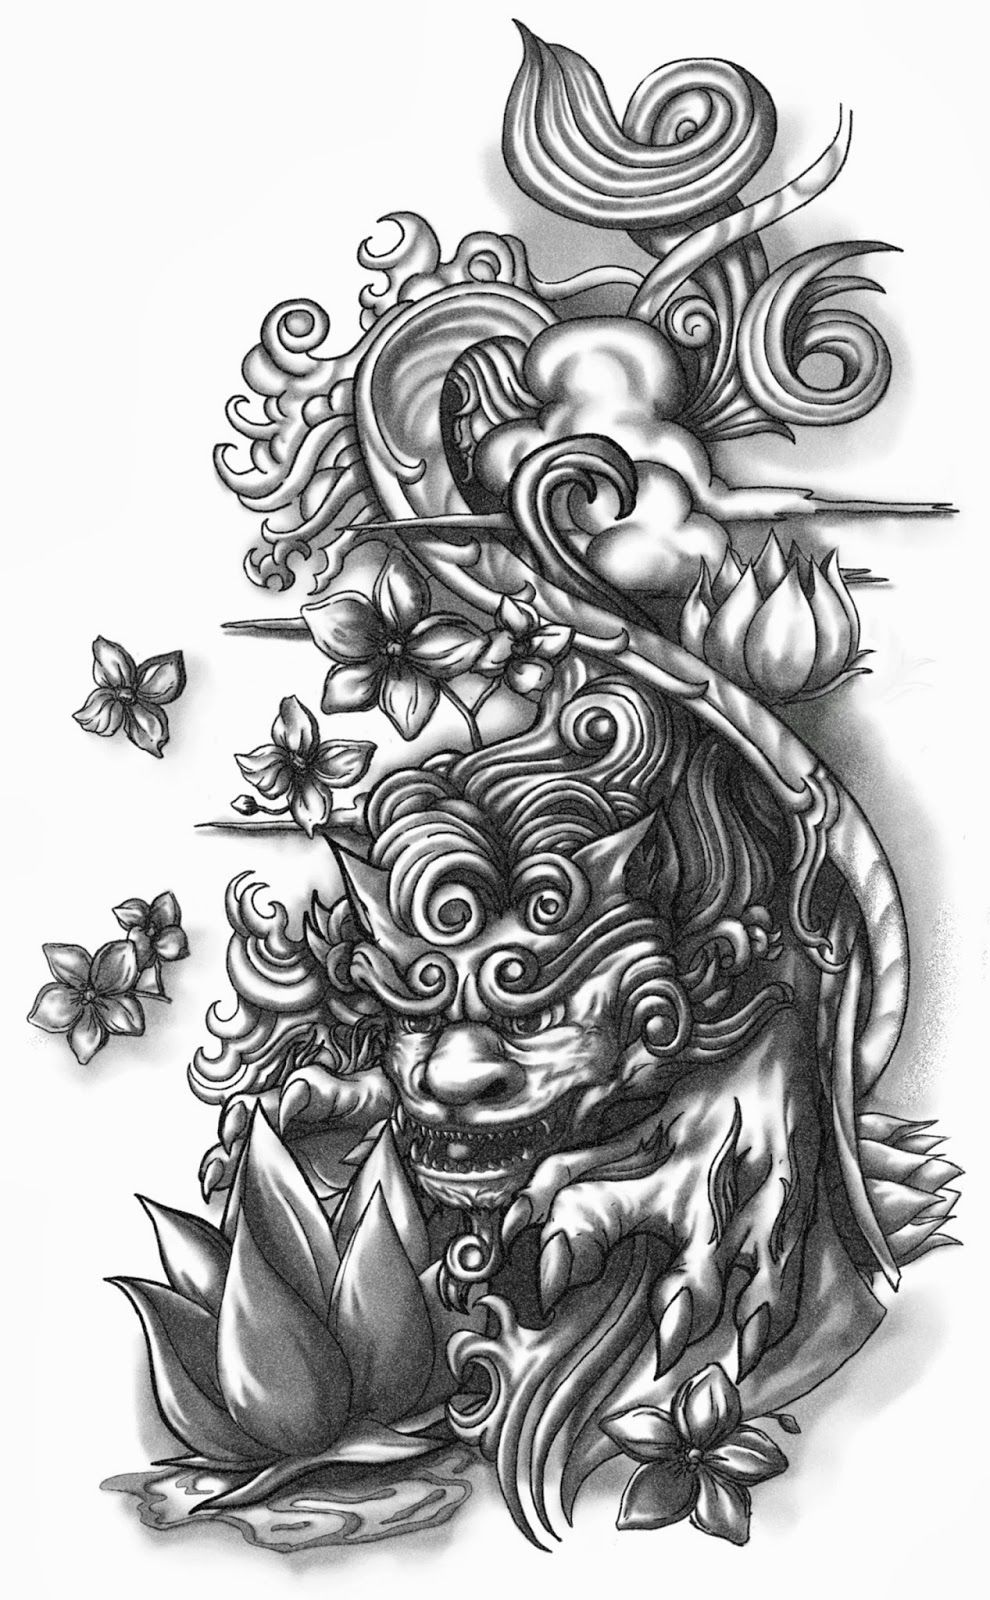 Tattoo Sleeve Sketches: Sleeve Tattoo Designs - Google Search